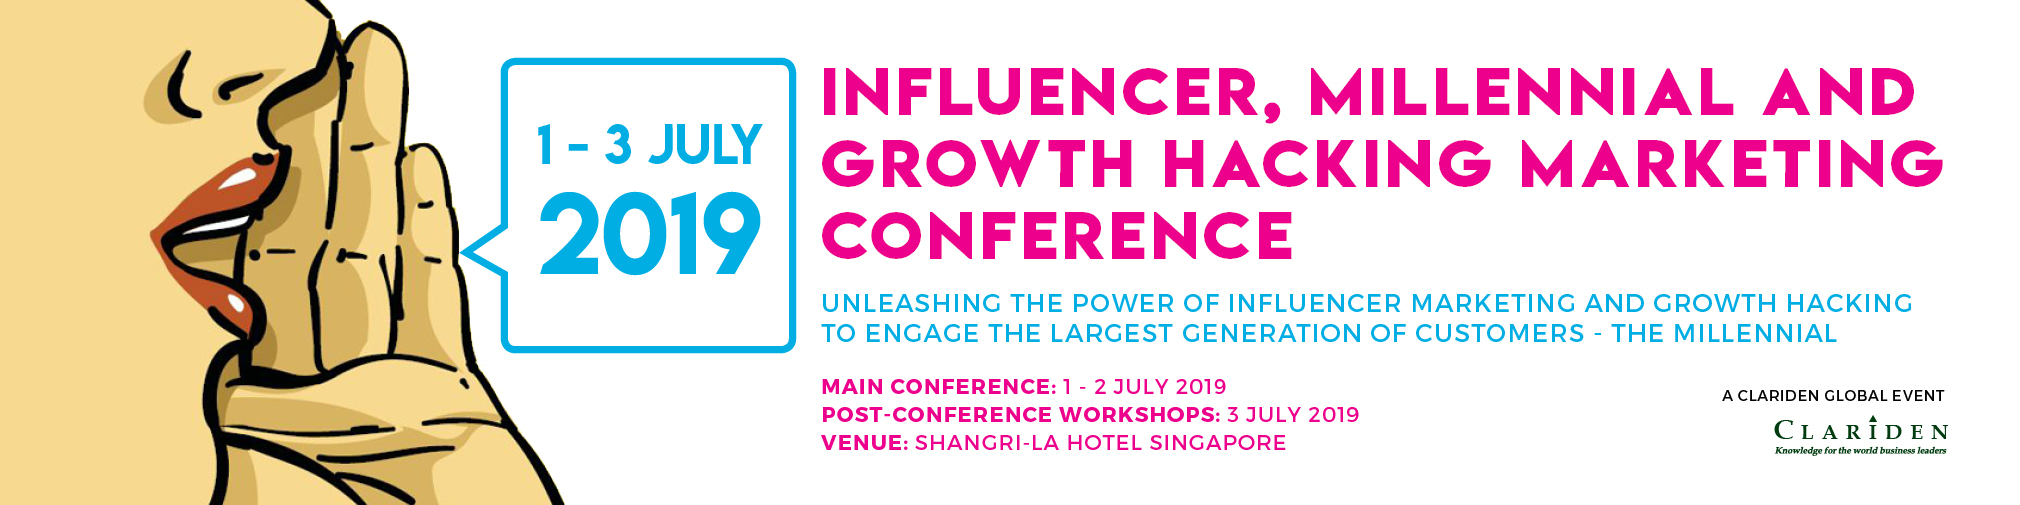 Influencer, Millennial & Growth Hacking Marketing Conference